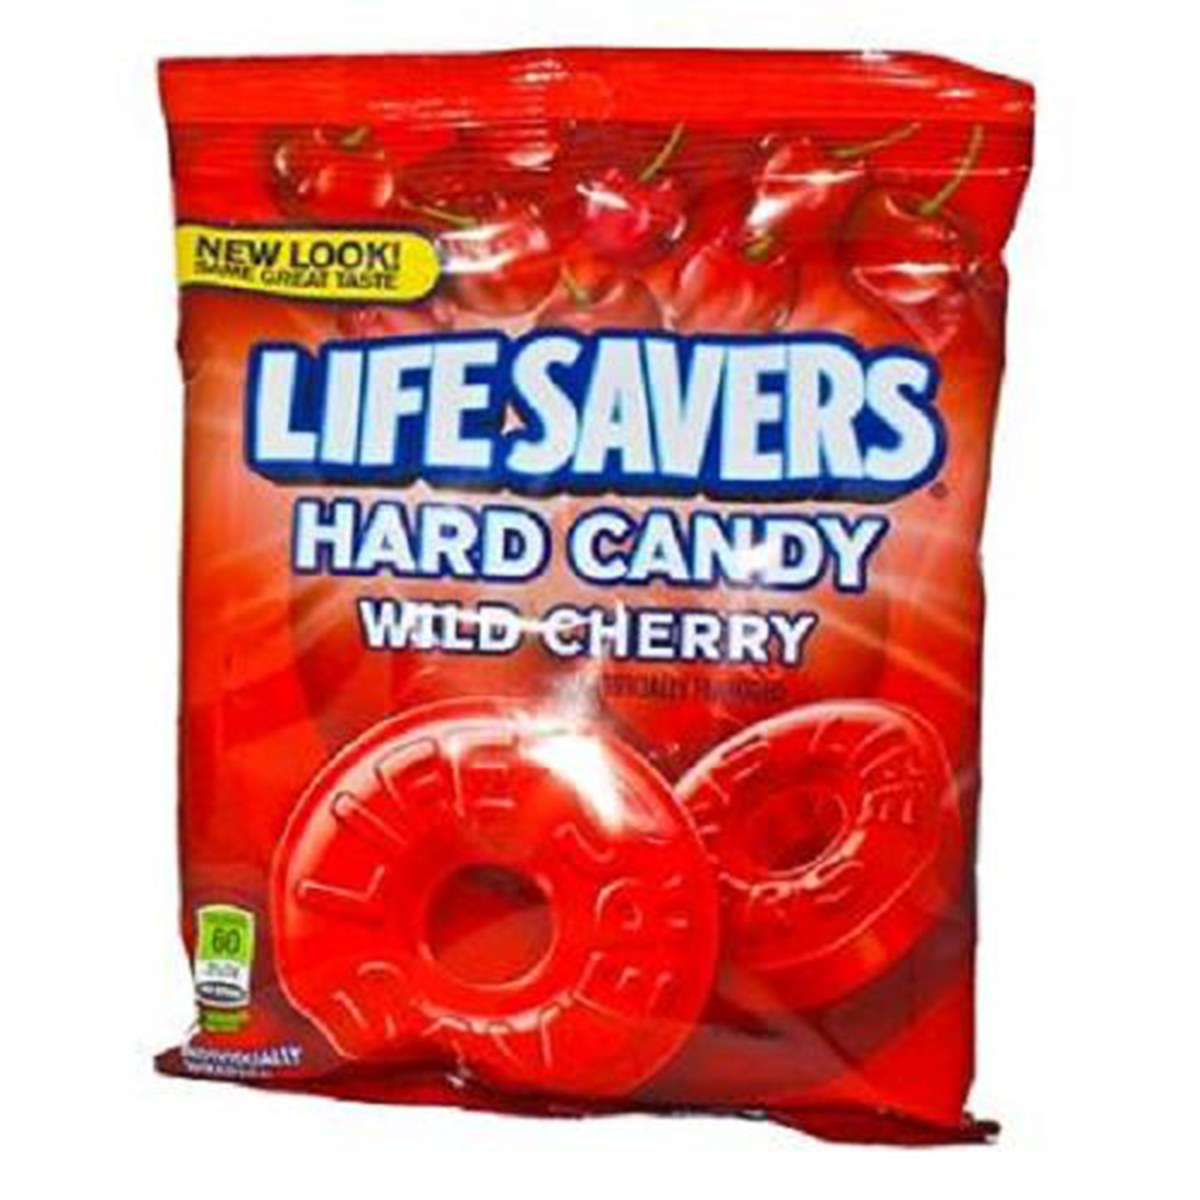 Picked up some gummy life savers, can't wait to try them